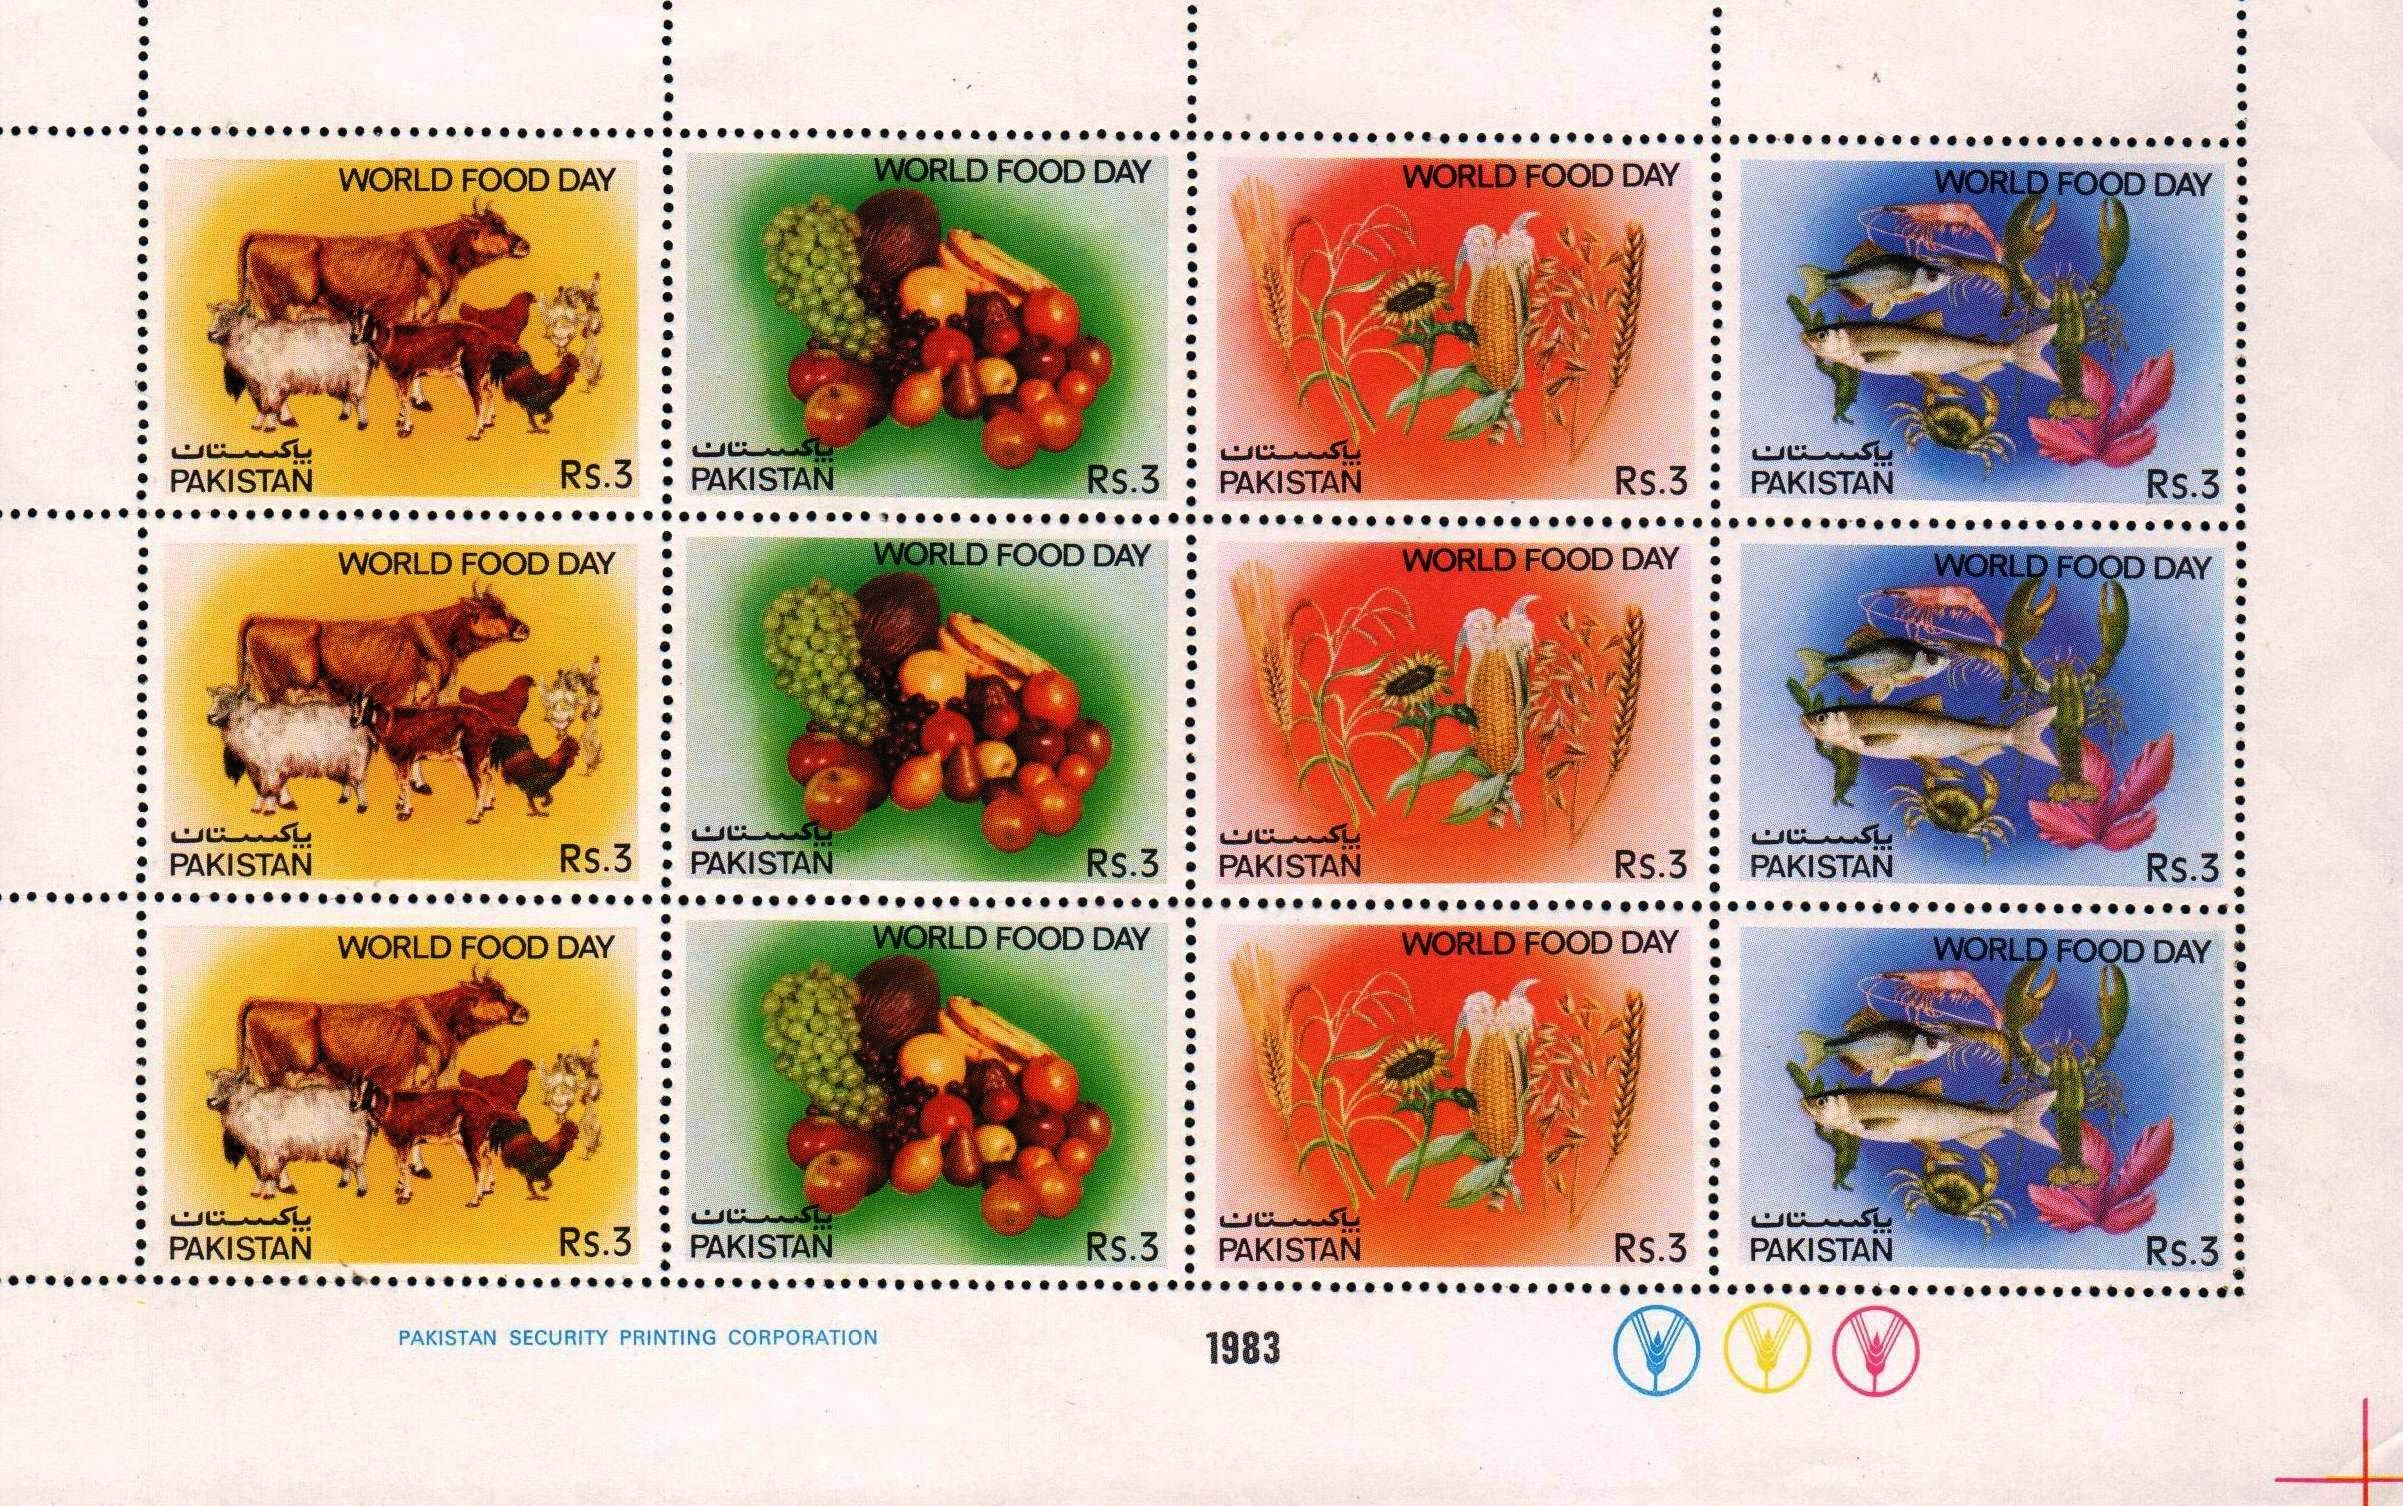 Pakistan Stamp Sheet 1983 World Food Day MNH